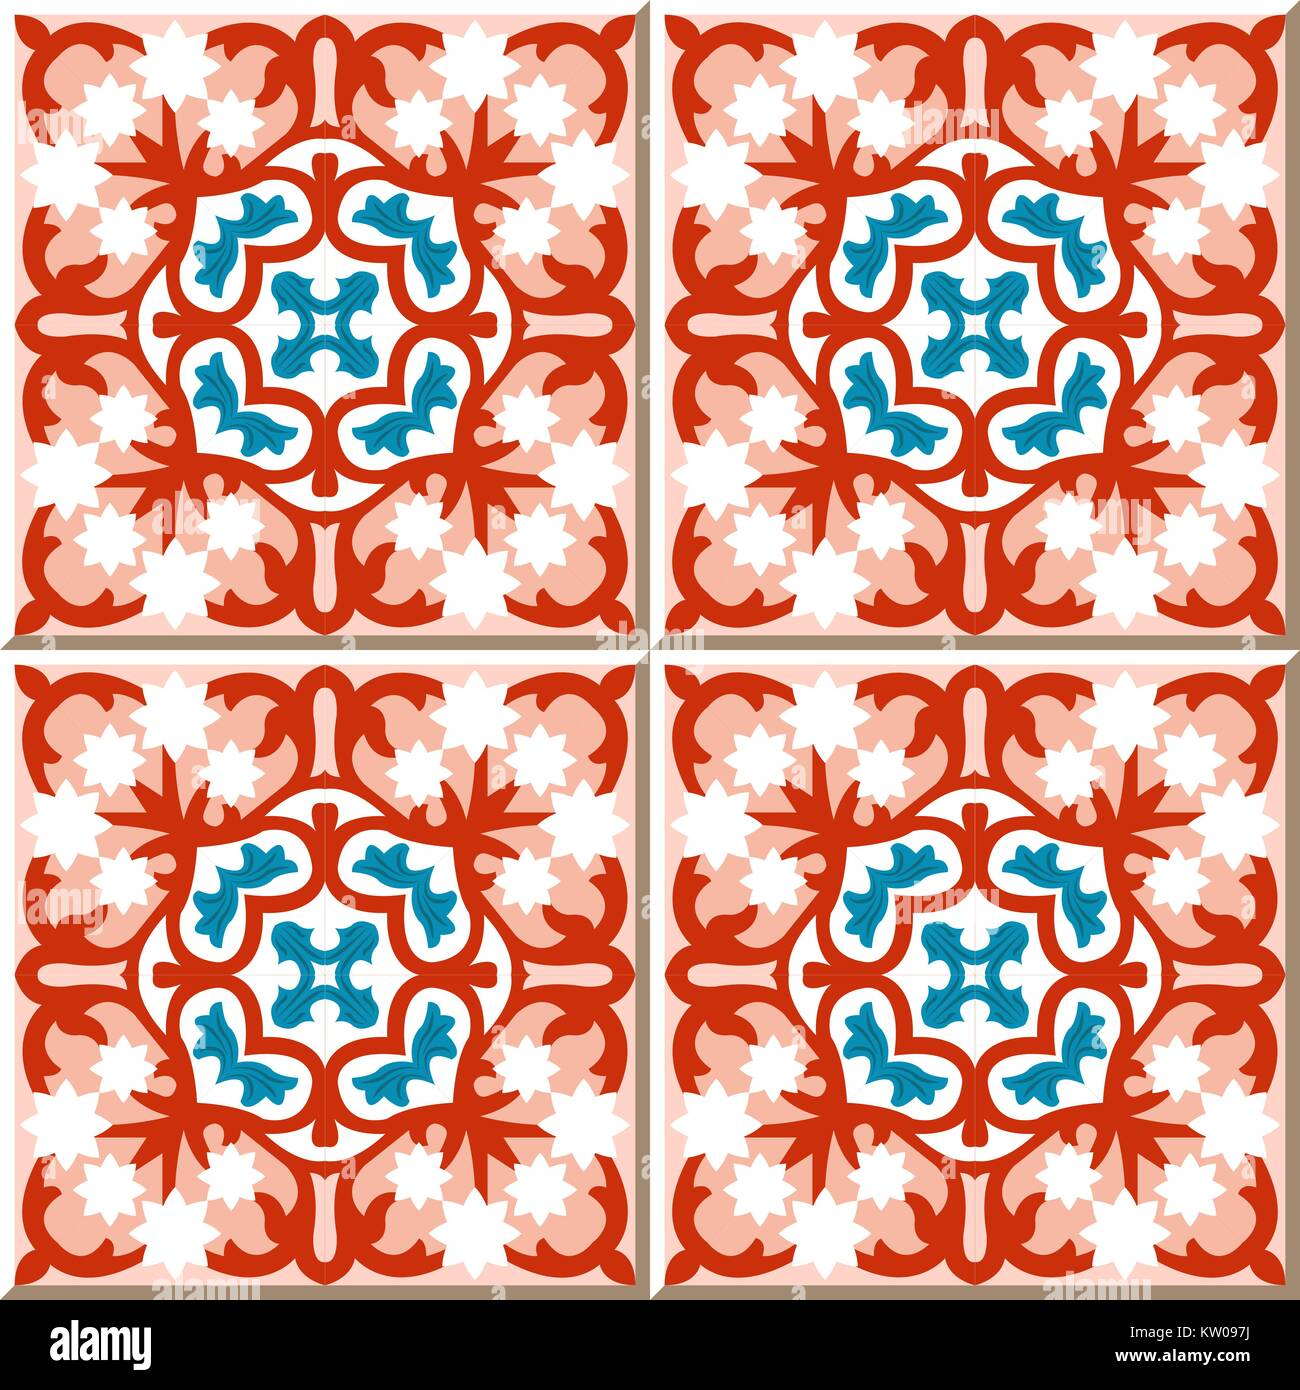 Ceramic Tile Pattern Of Red Blue Star White Flower Cross Kaleidosocpe Stock Vector Image Art Alamy